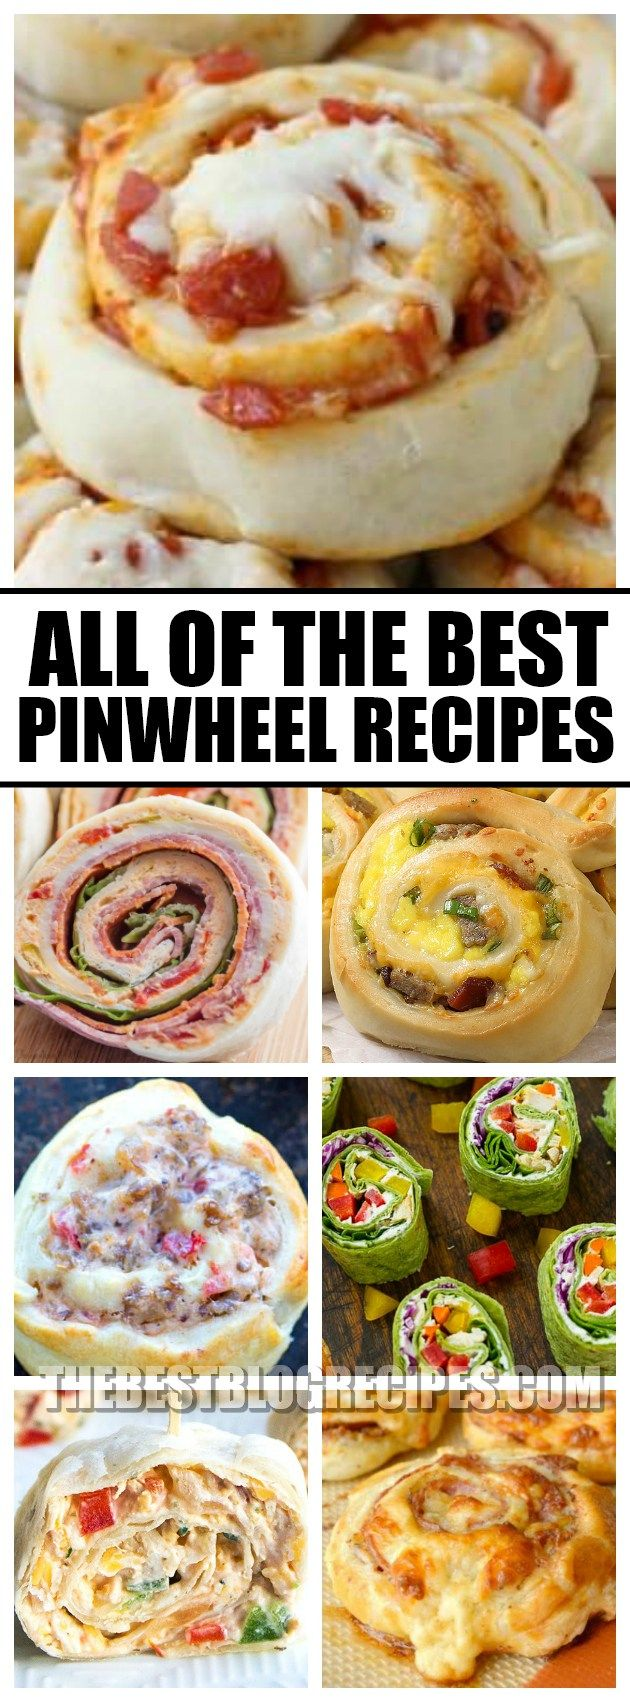 If you need a fun Appetizer or Kid Friendly Dinner then this list of The Best Pinwheel Recipes is just what you've been waiting for. From hot and delicious Pizza Pinwheels, to easy Turkey and Cheddar Pinwheels — there is something on this list for every occasion!